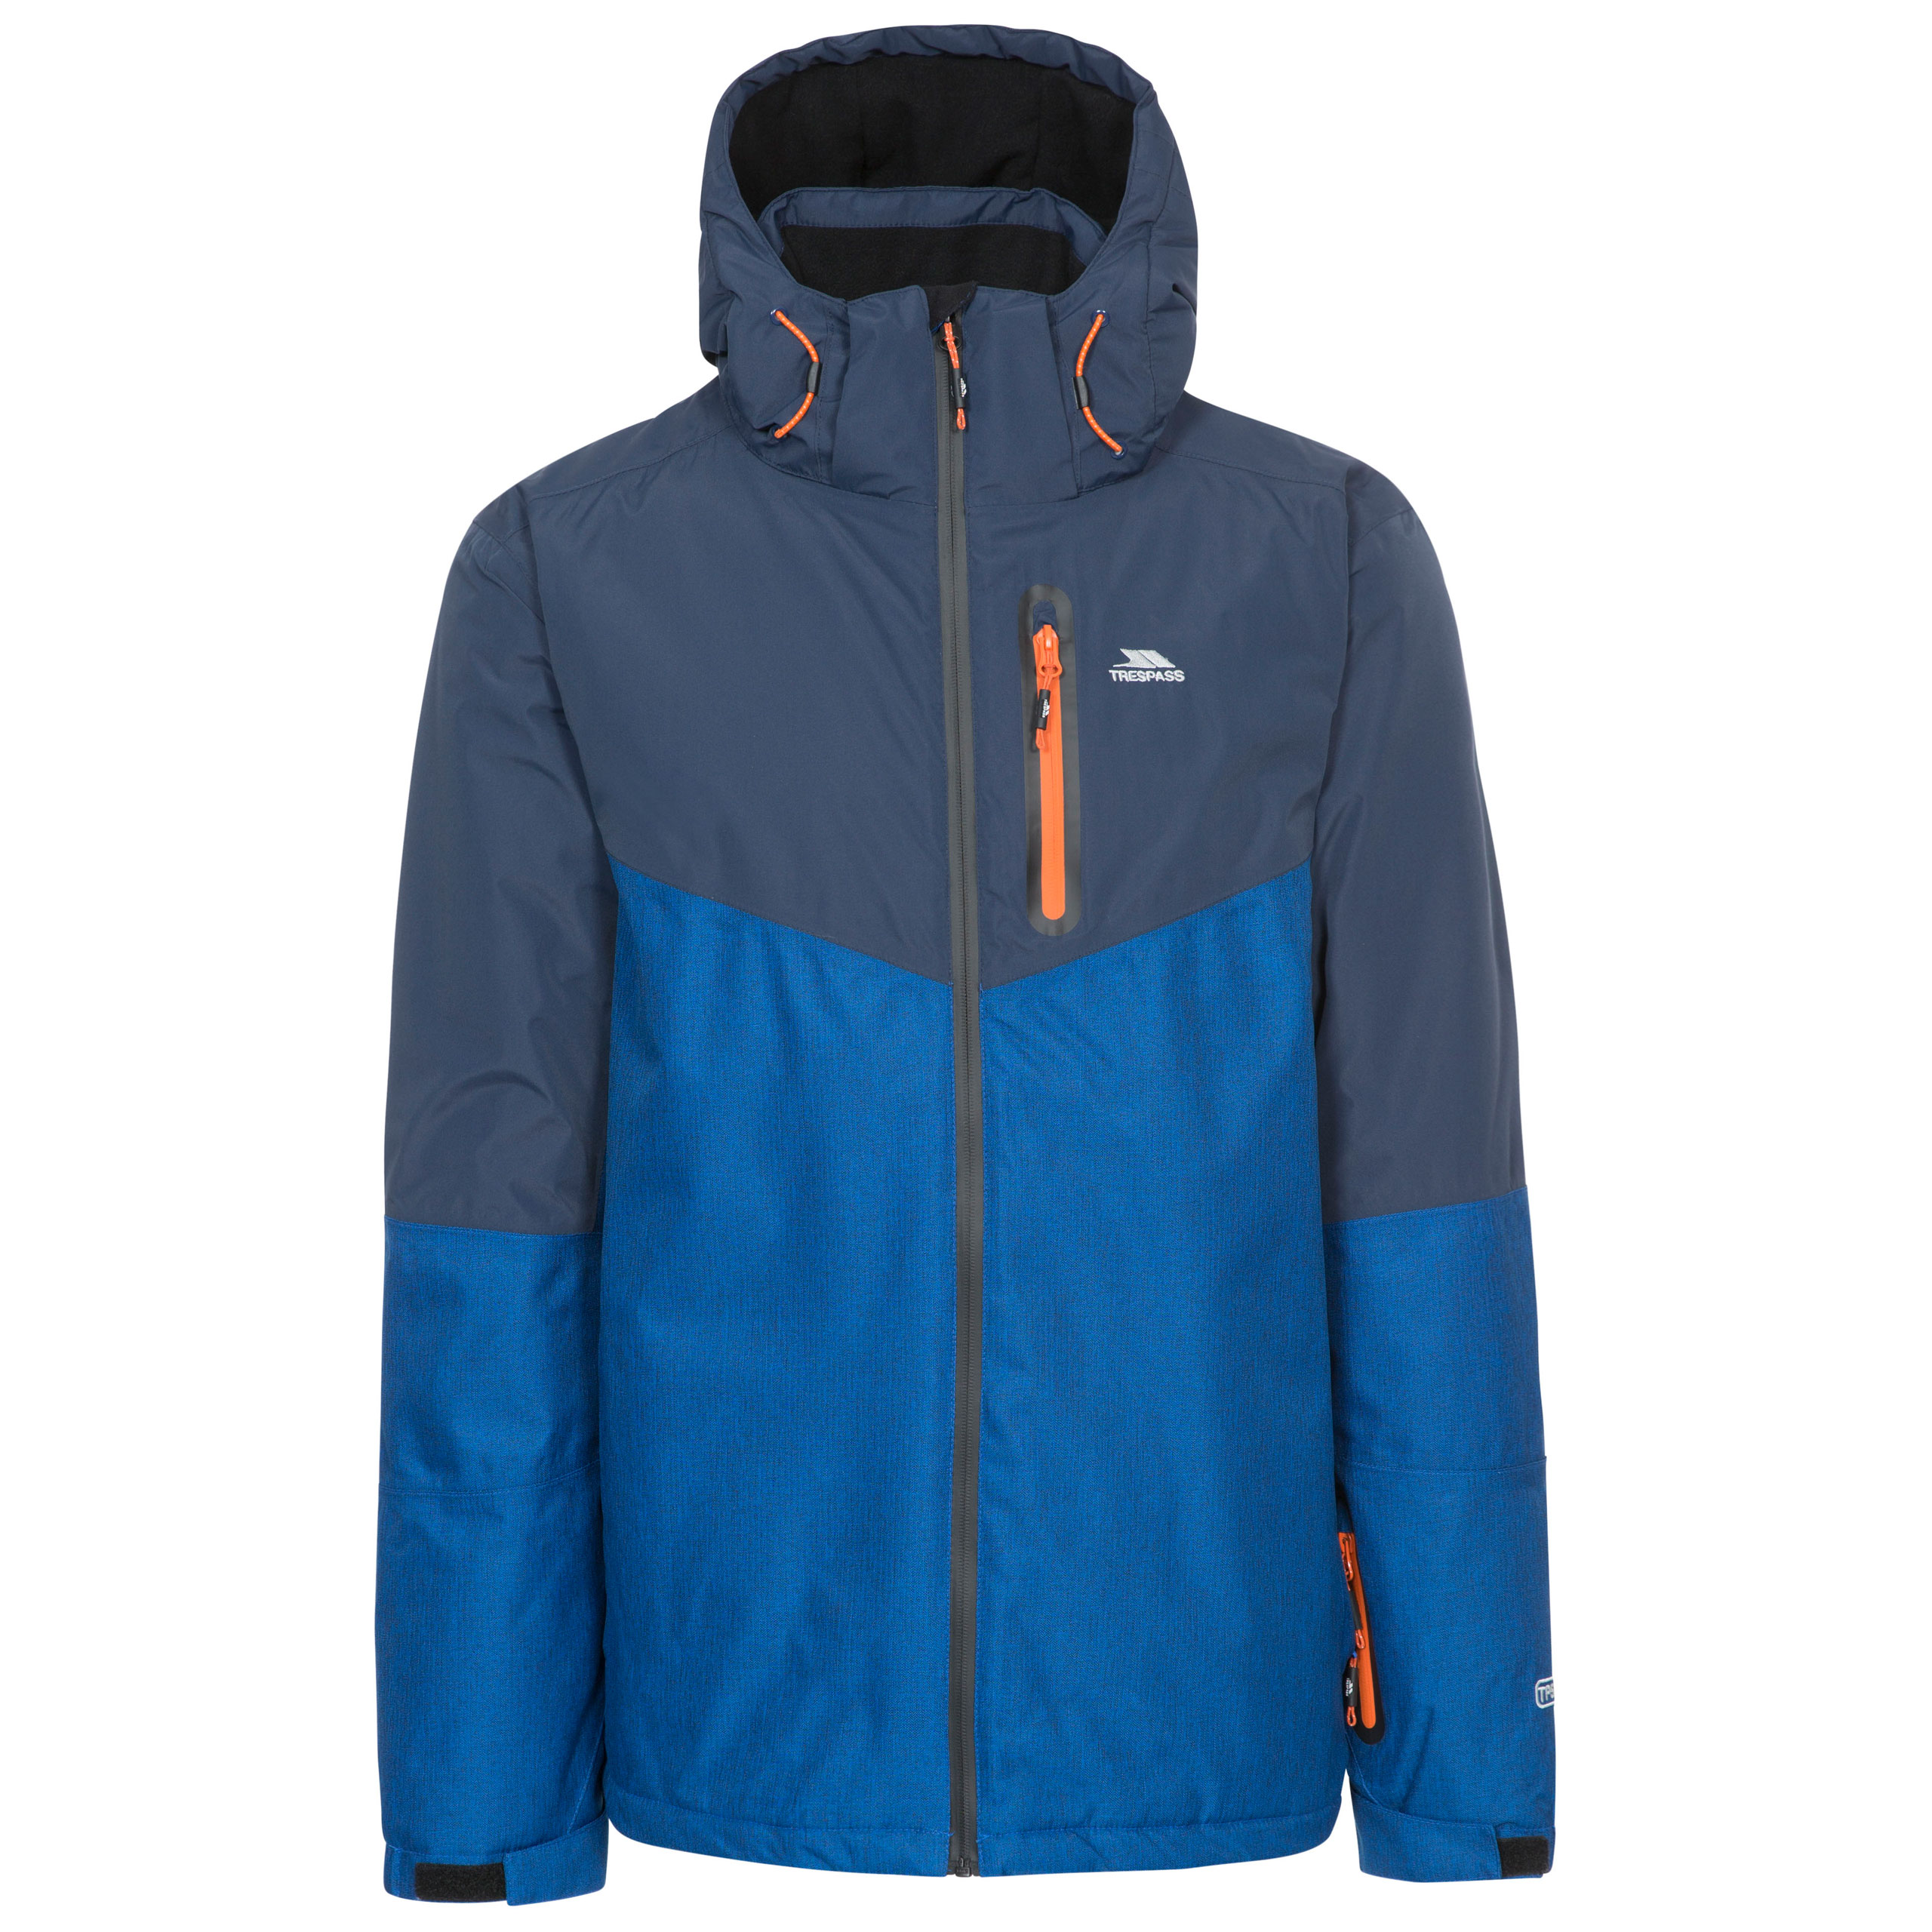 Trespass-Bear-Mens-Waterproof-Ski-Jacket-In-Navy-Grey-amp-Black